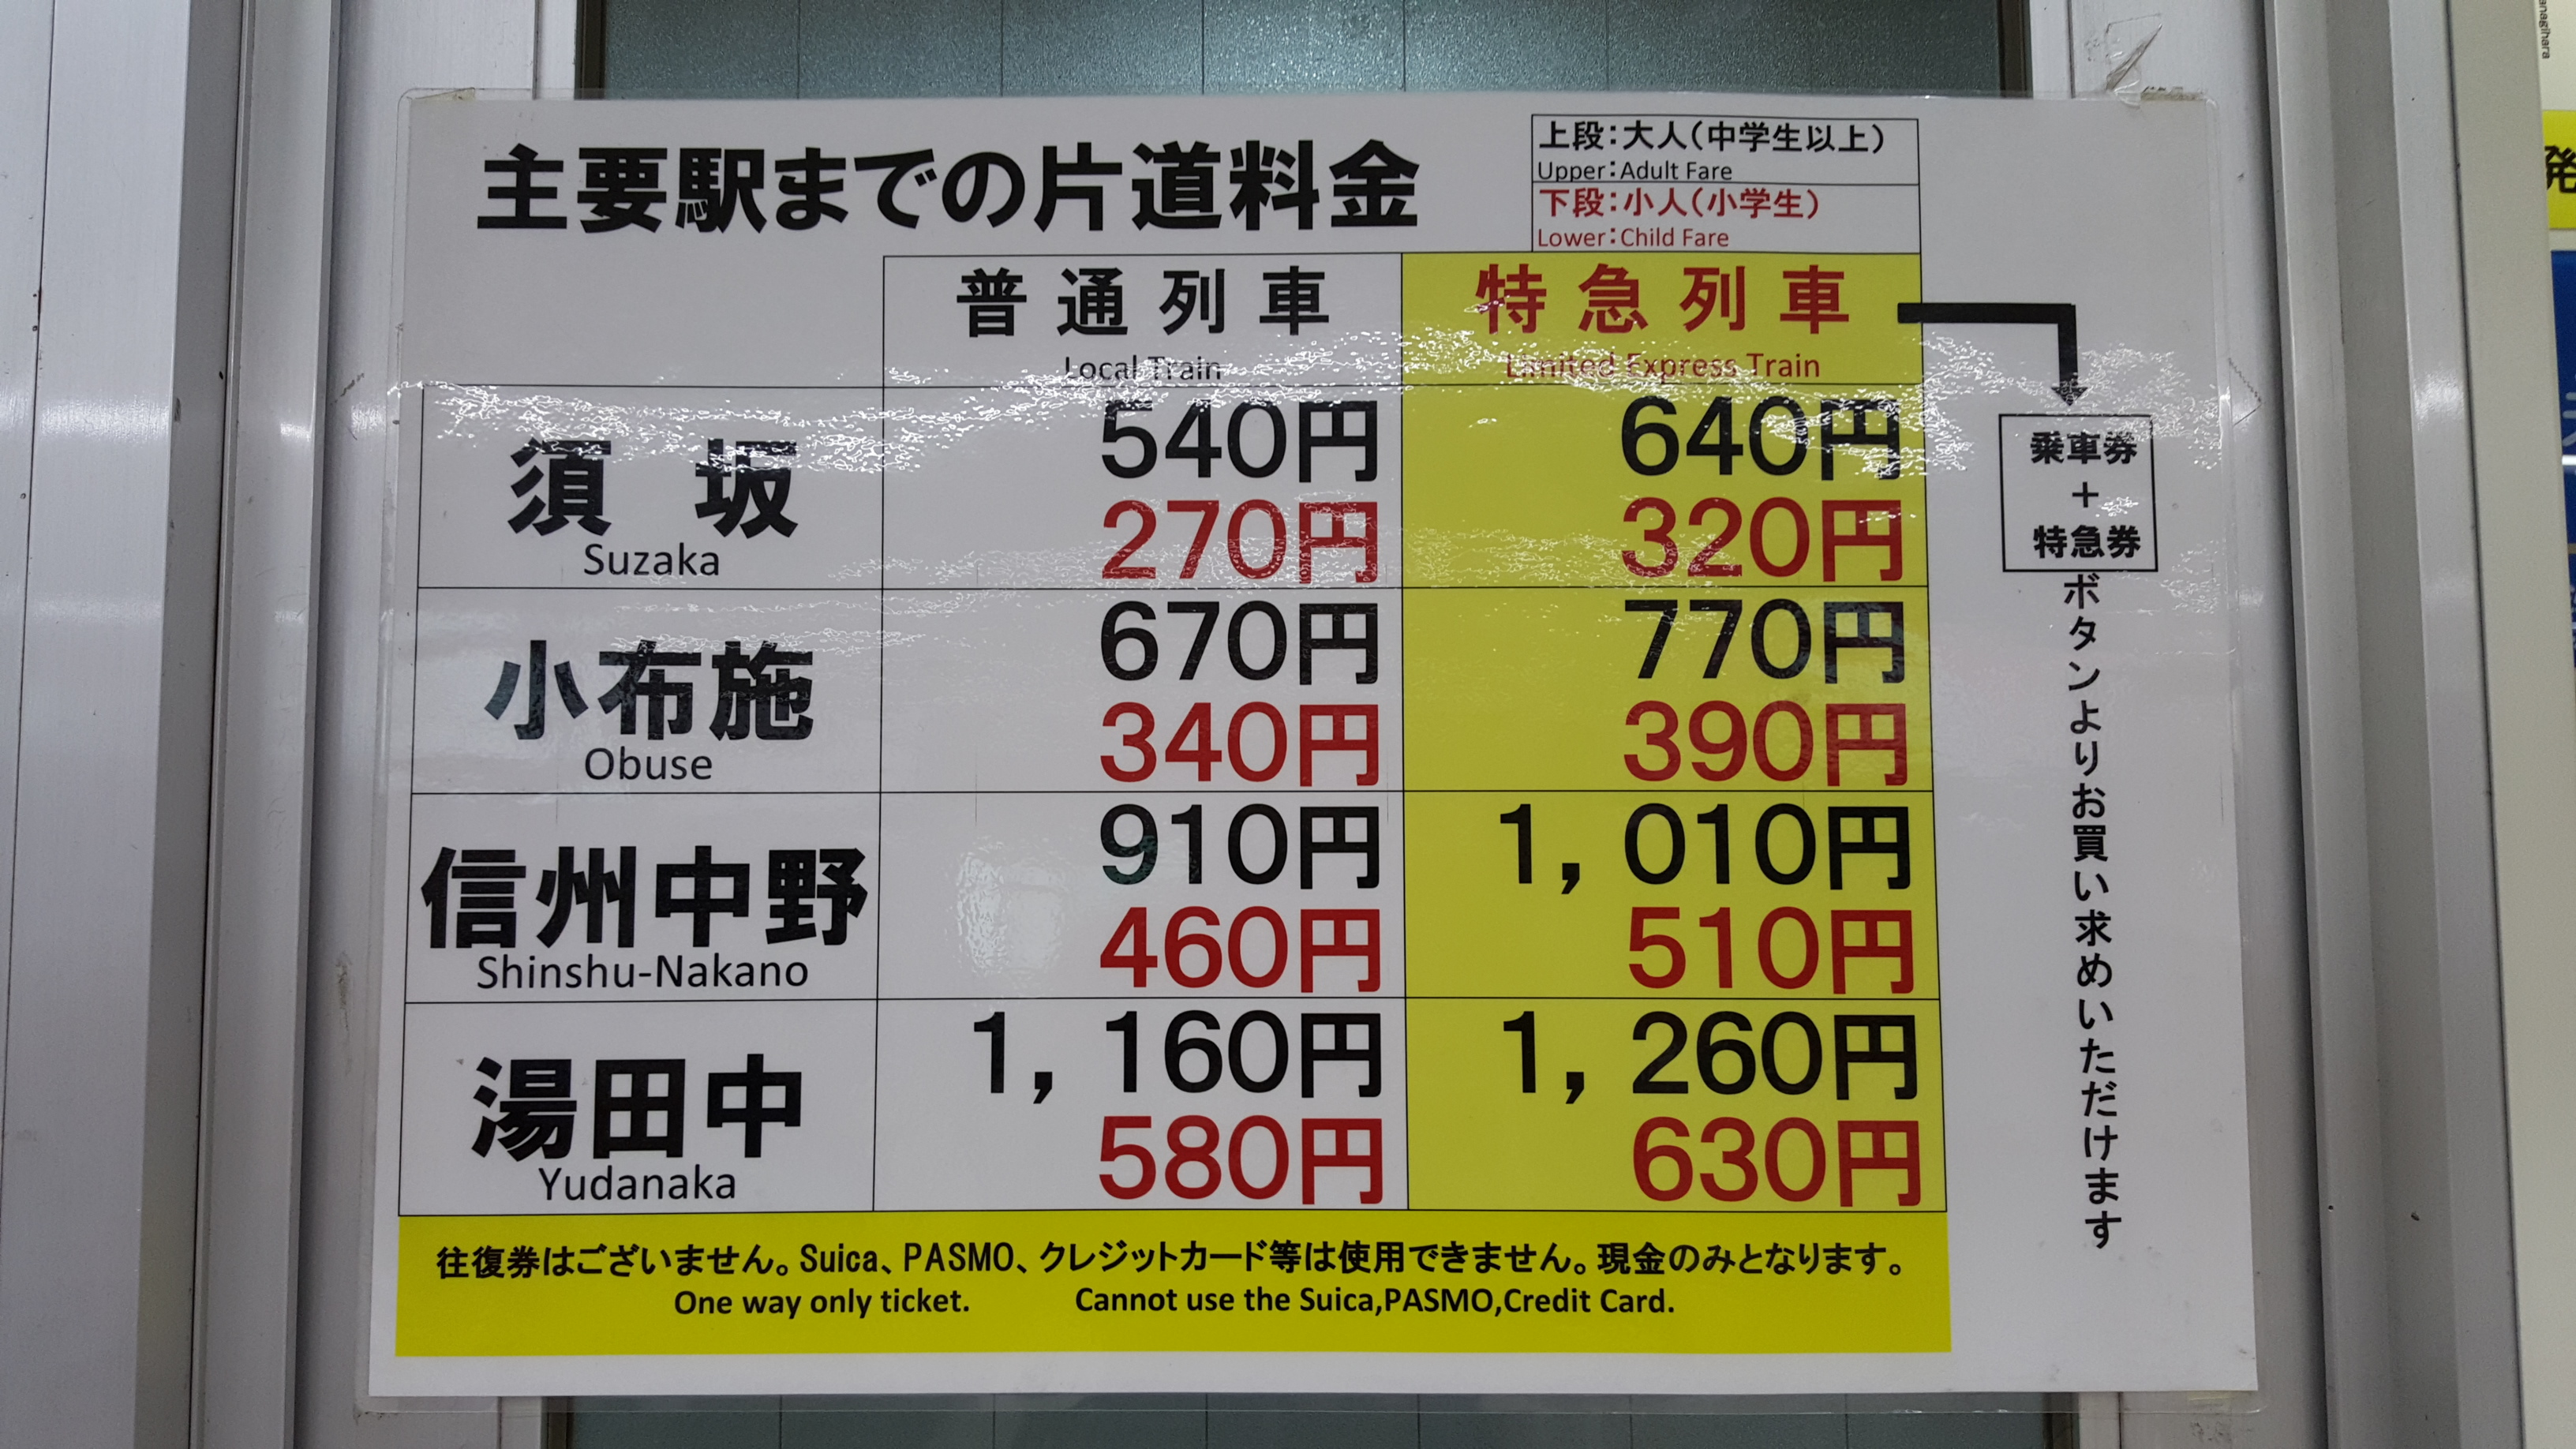 Prices for main stops